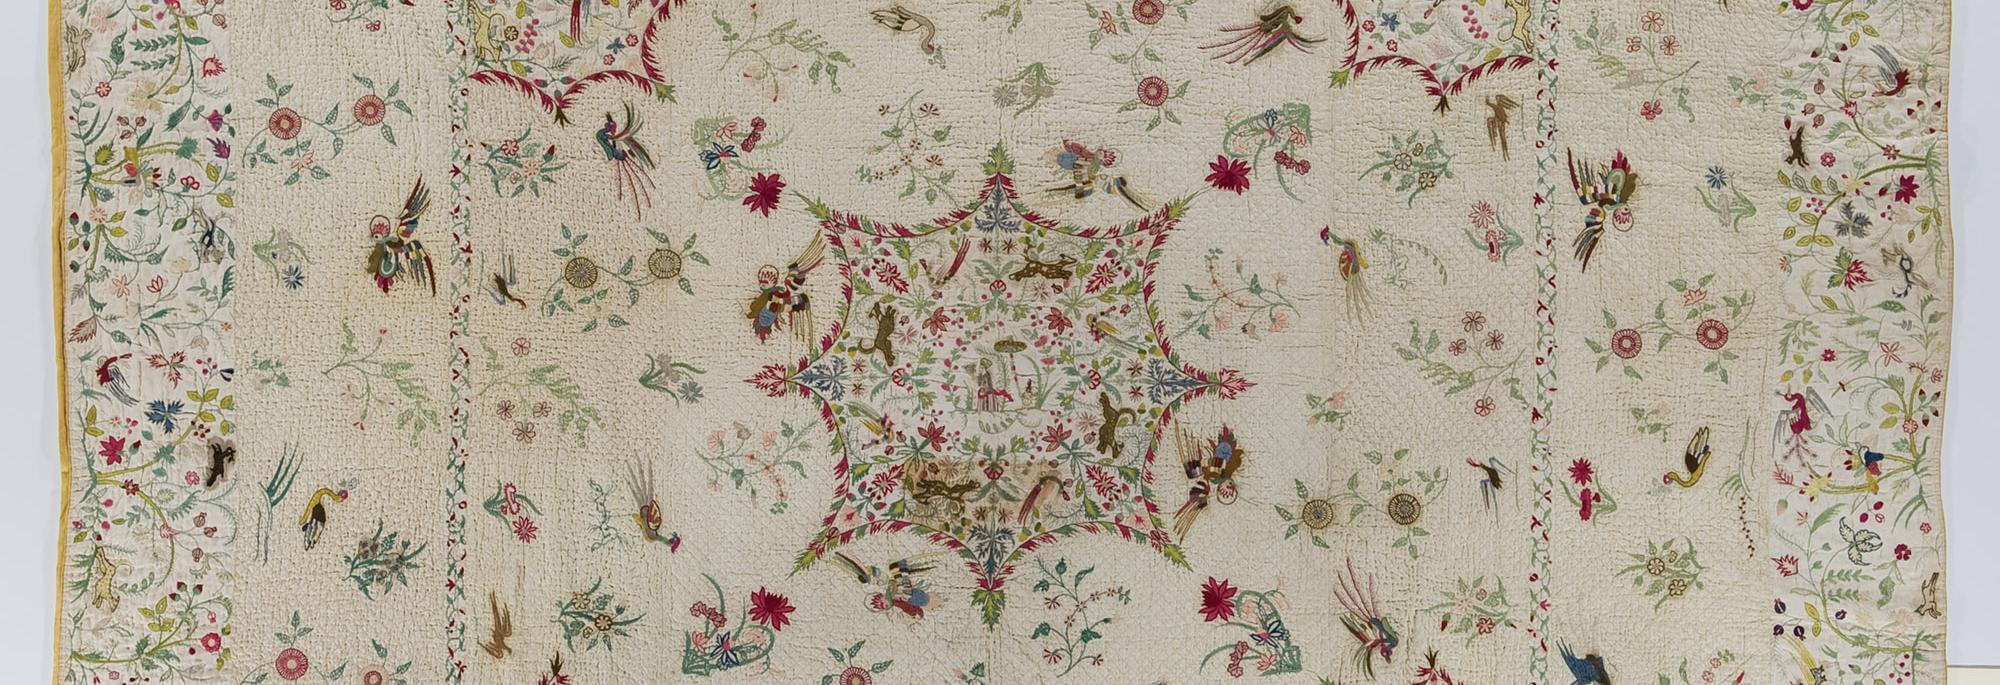 Medallion - Early Quilt